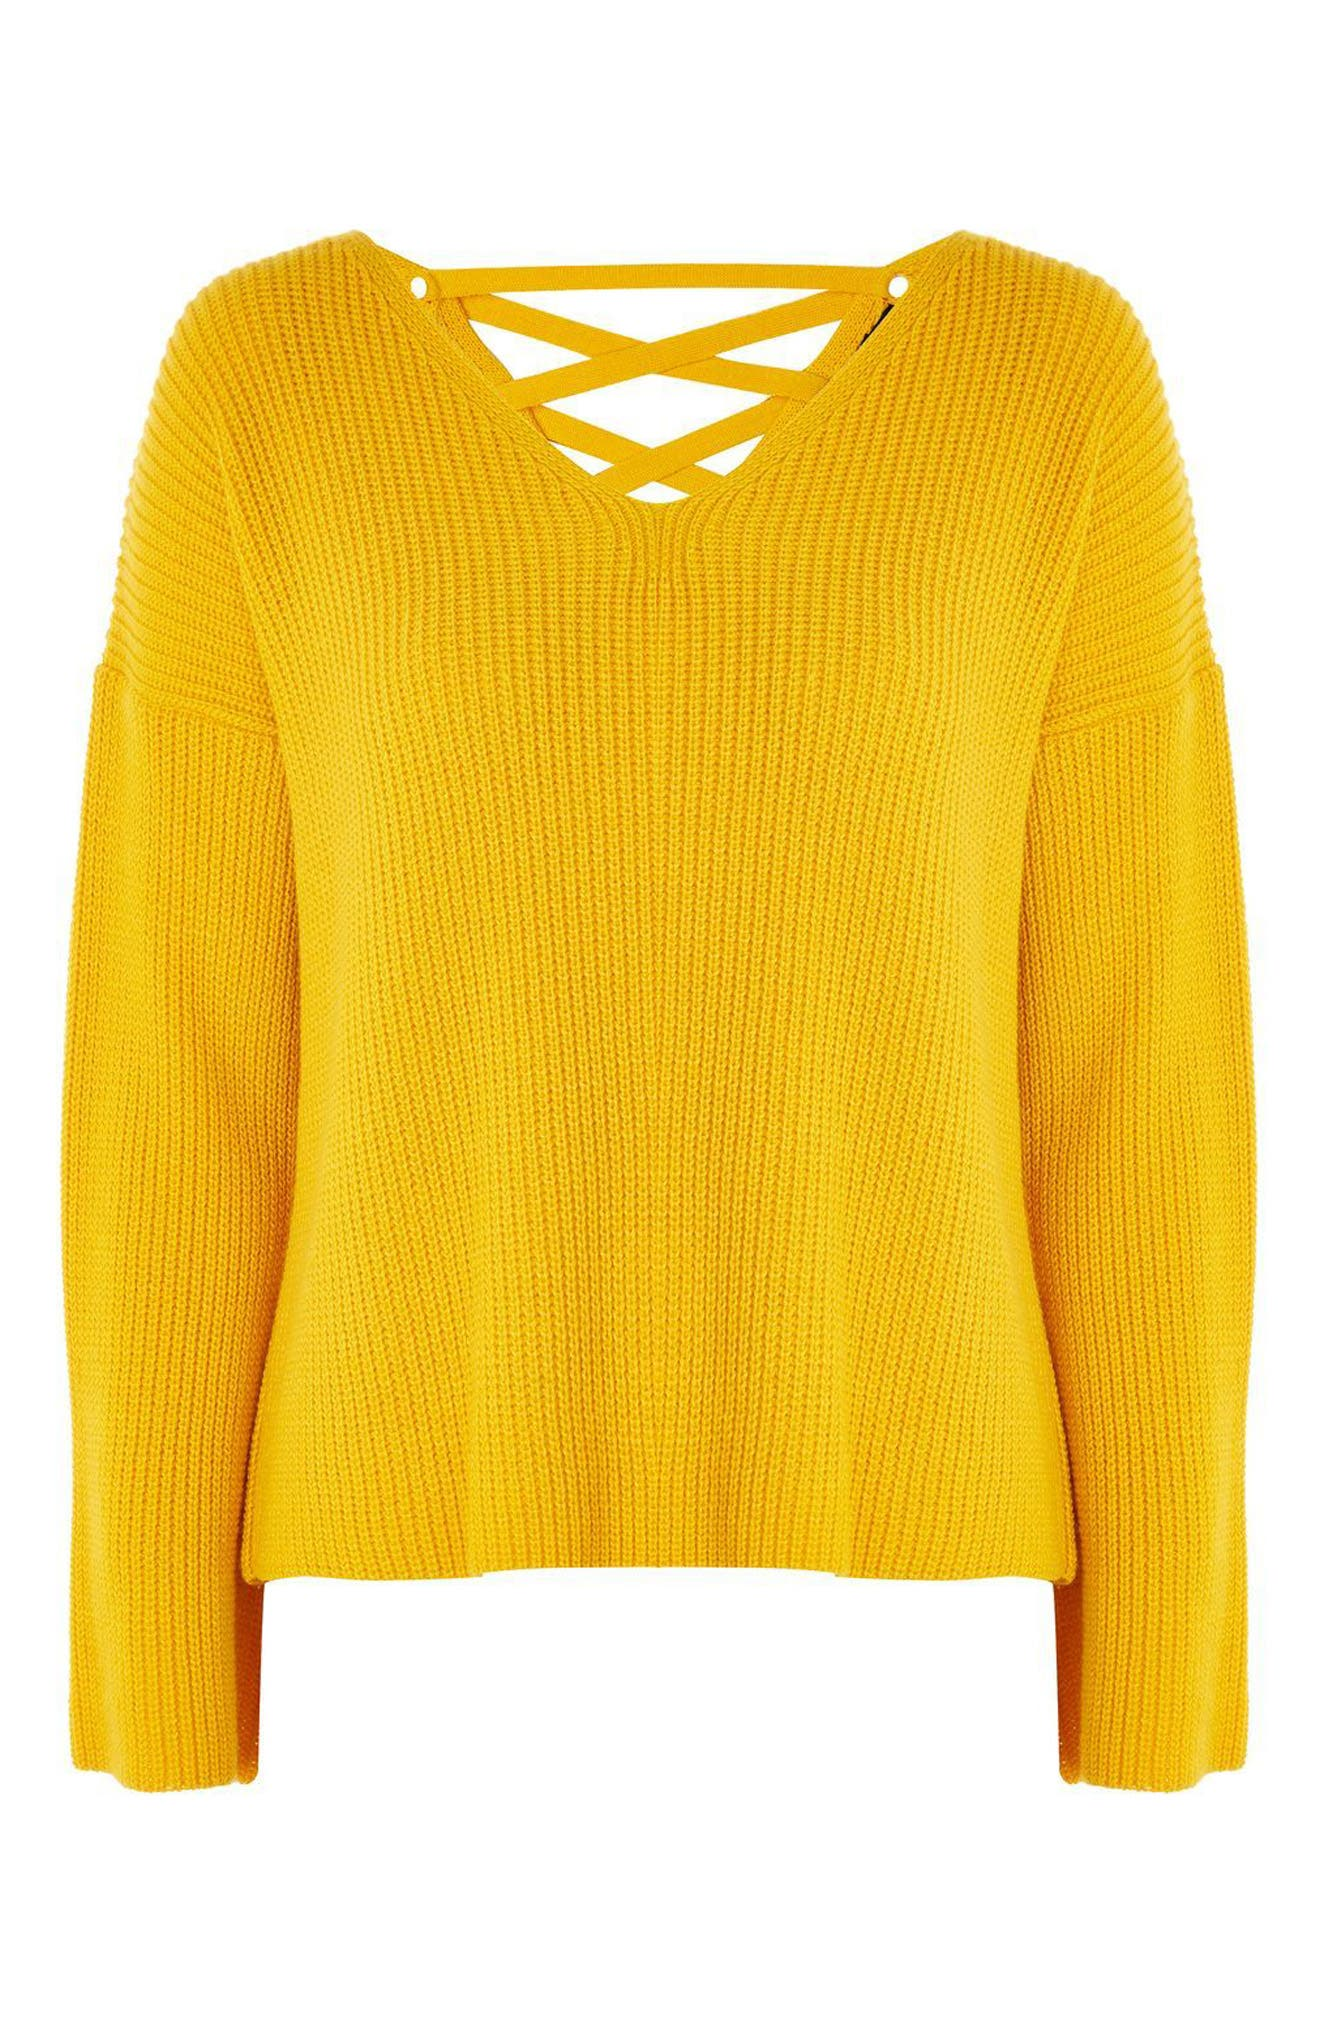 Alternate Image 3  - Topshop Lattice Back Sweater